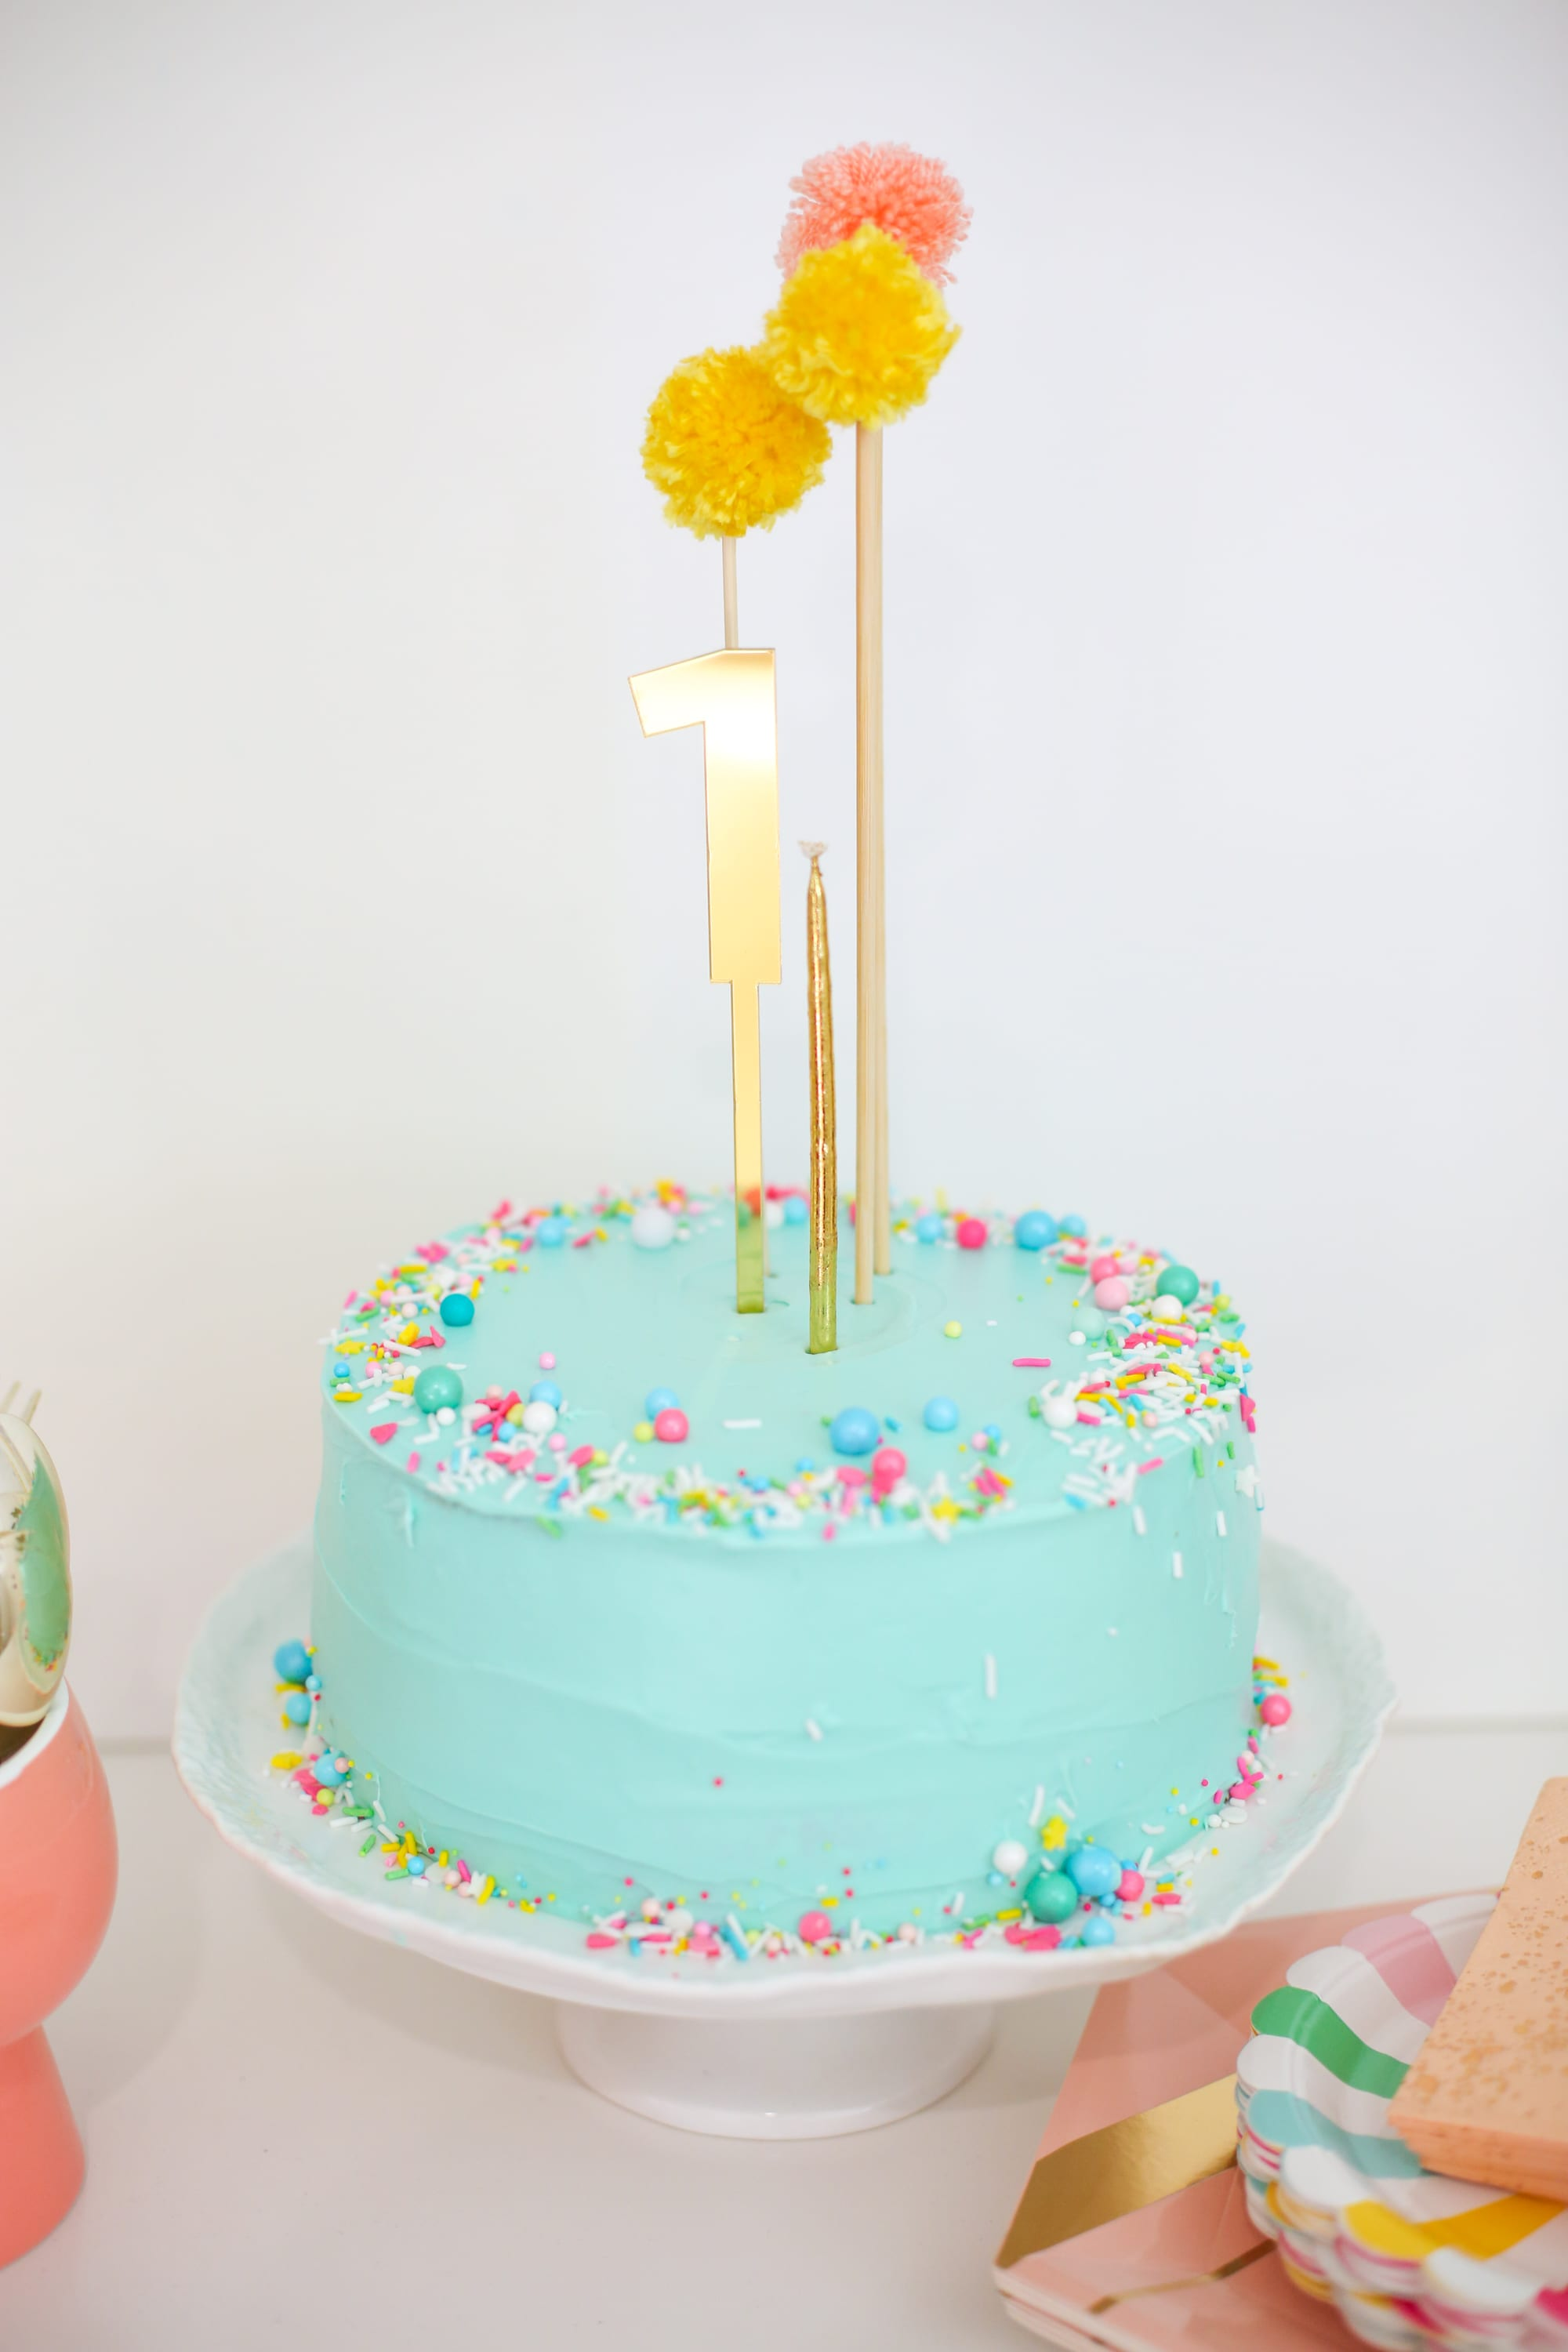 Make a sprinkle cake with a pompom cake topper